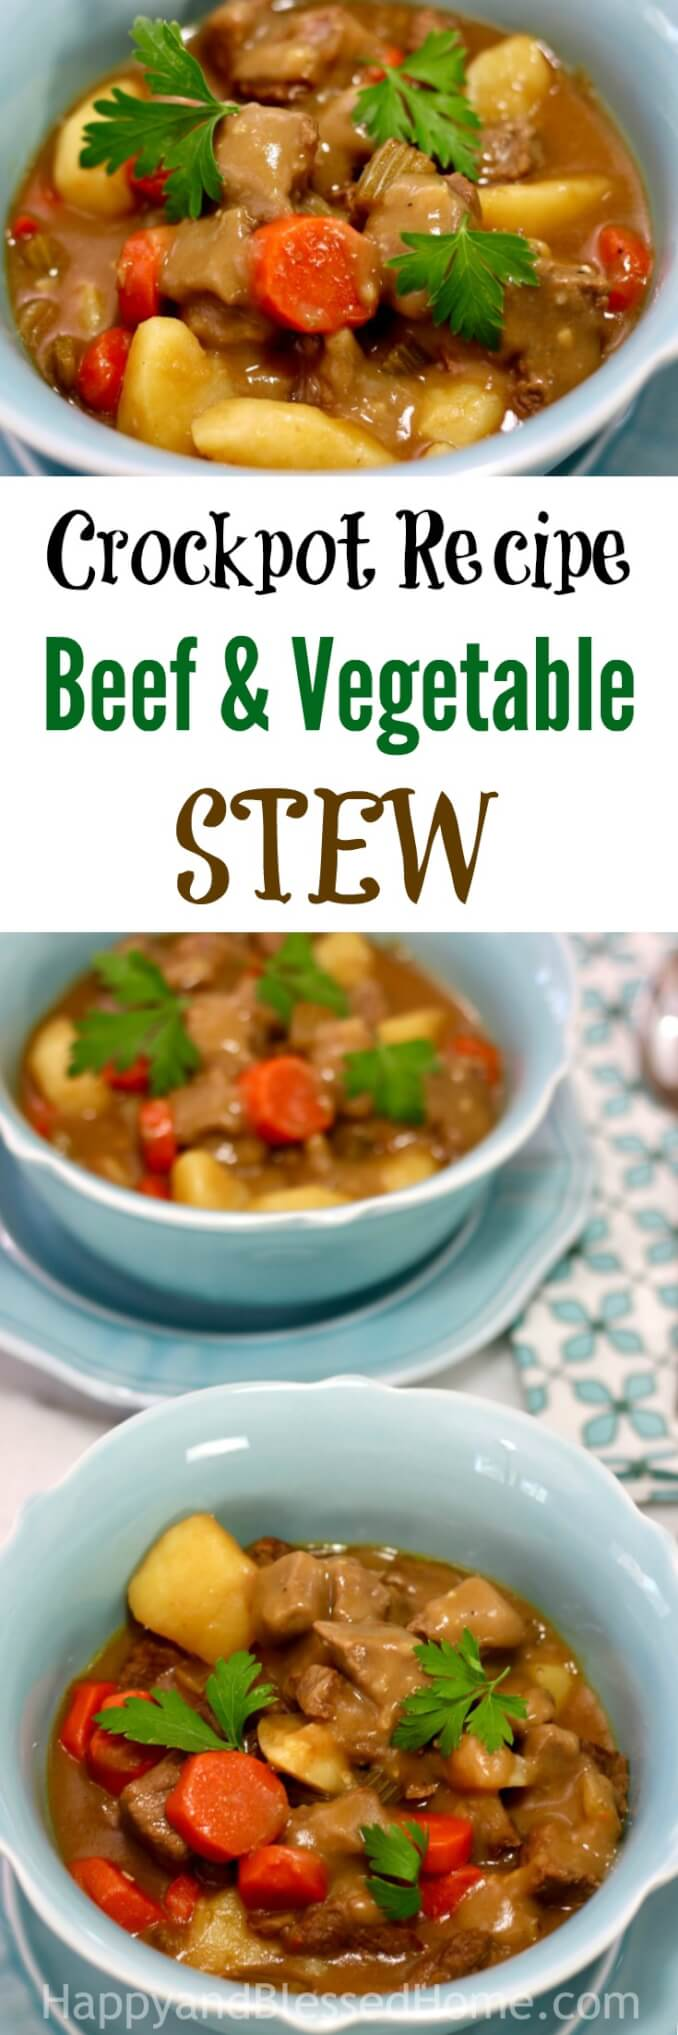 Easy Recipe for Slow Cooker Beef and Vegetable Stew. It's a one-pot meal you can set in your crockpot, leave all day, and come home to a great smelling kitchen and a fabulous dinner.